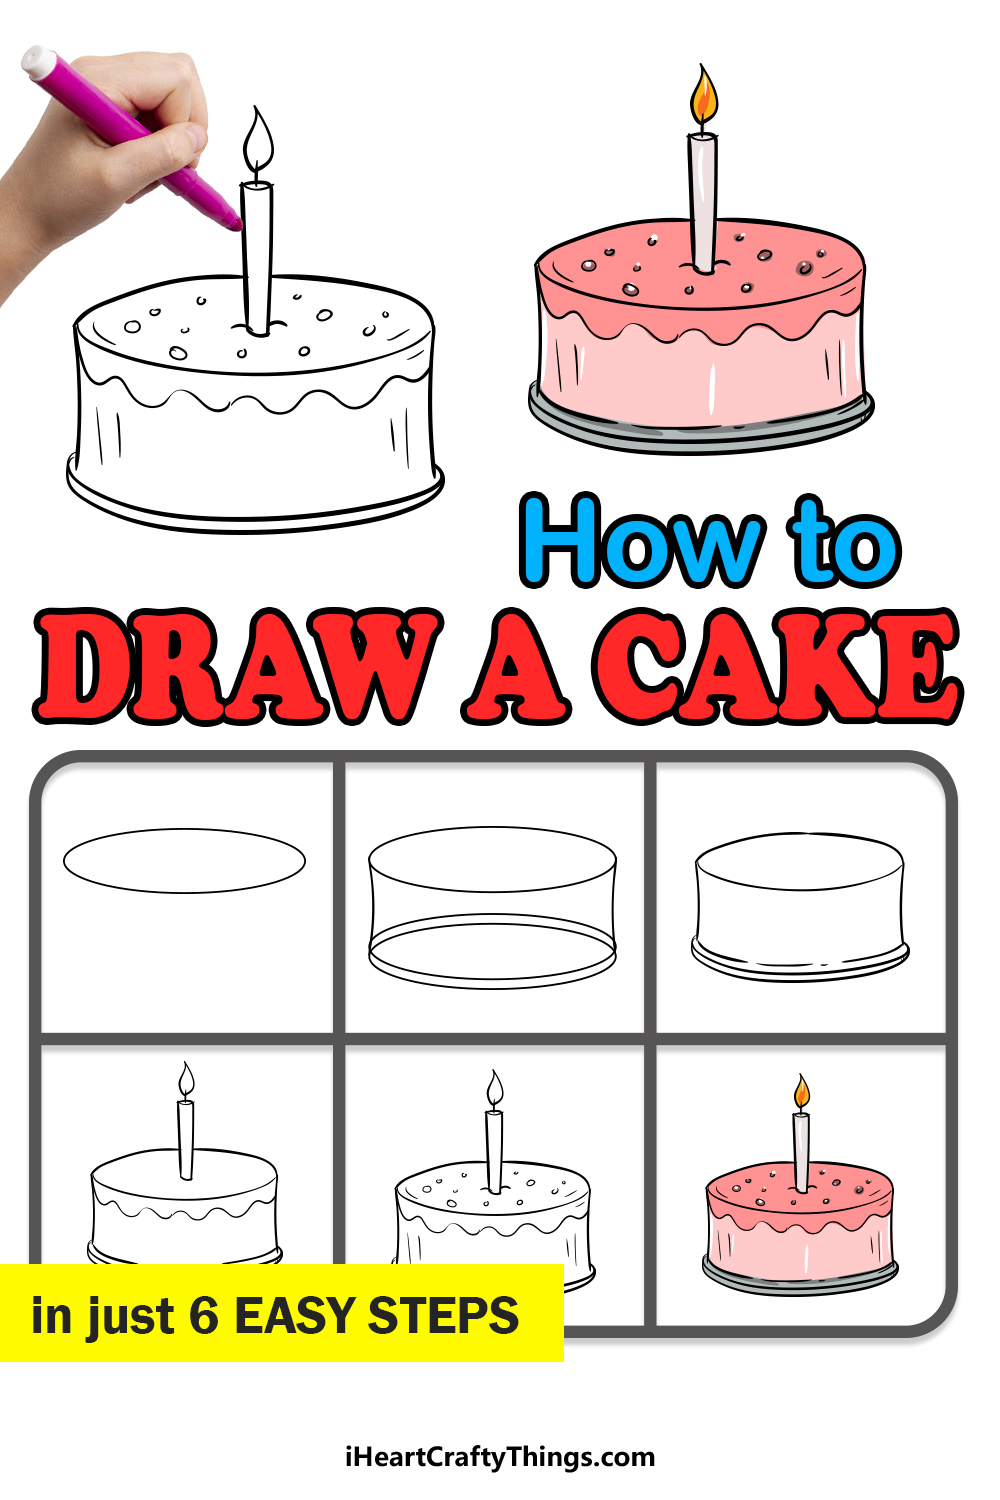 how to draw a cake in 6 easy steps